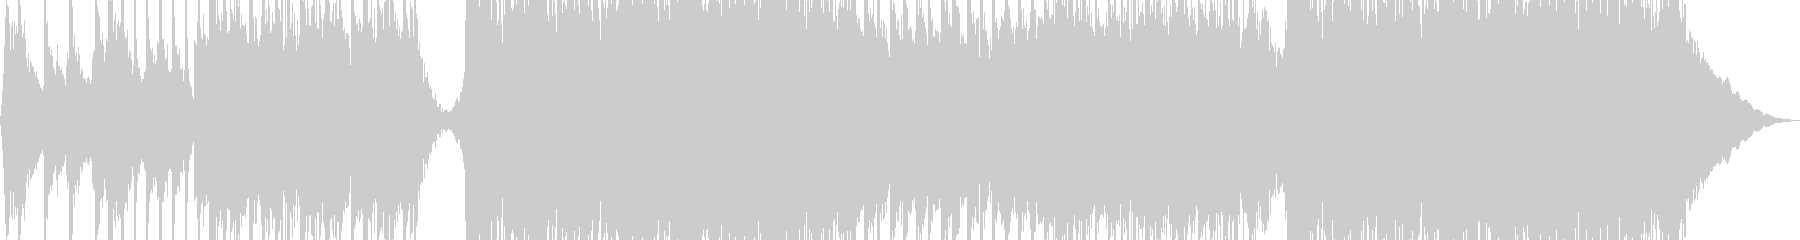 Super stylish rock's unreproduced waveform